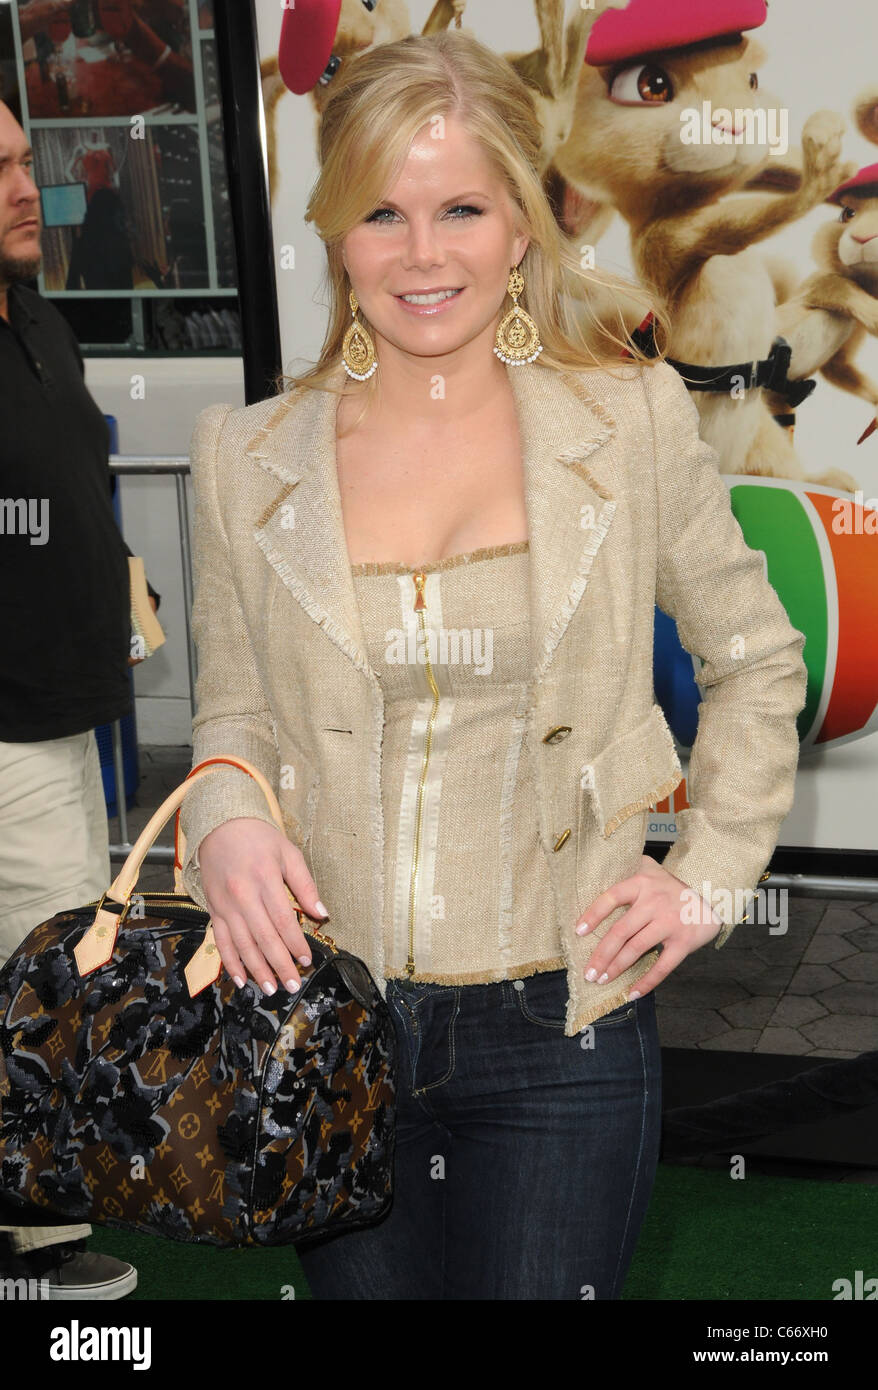 Jessica Strother USA,Monica Gayle (actress) Hot pics Patrick Stewart (born 1940 (naturalized American citizen),Eaddy Mays